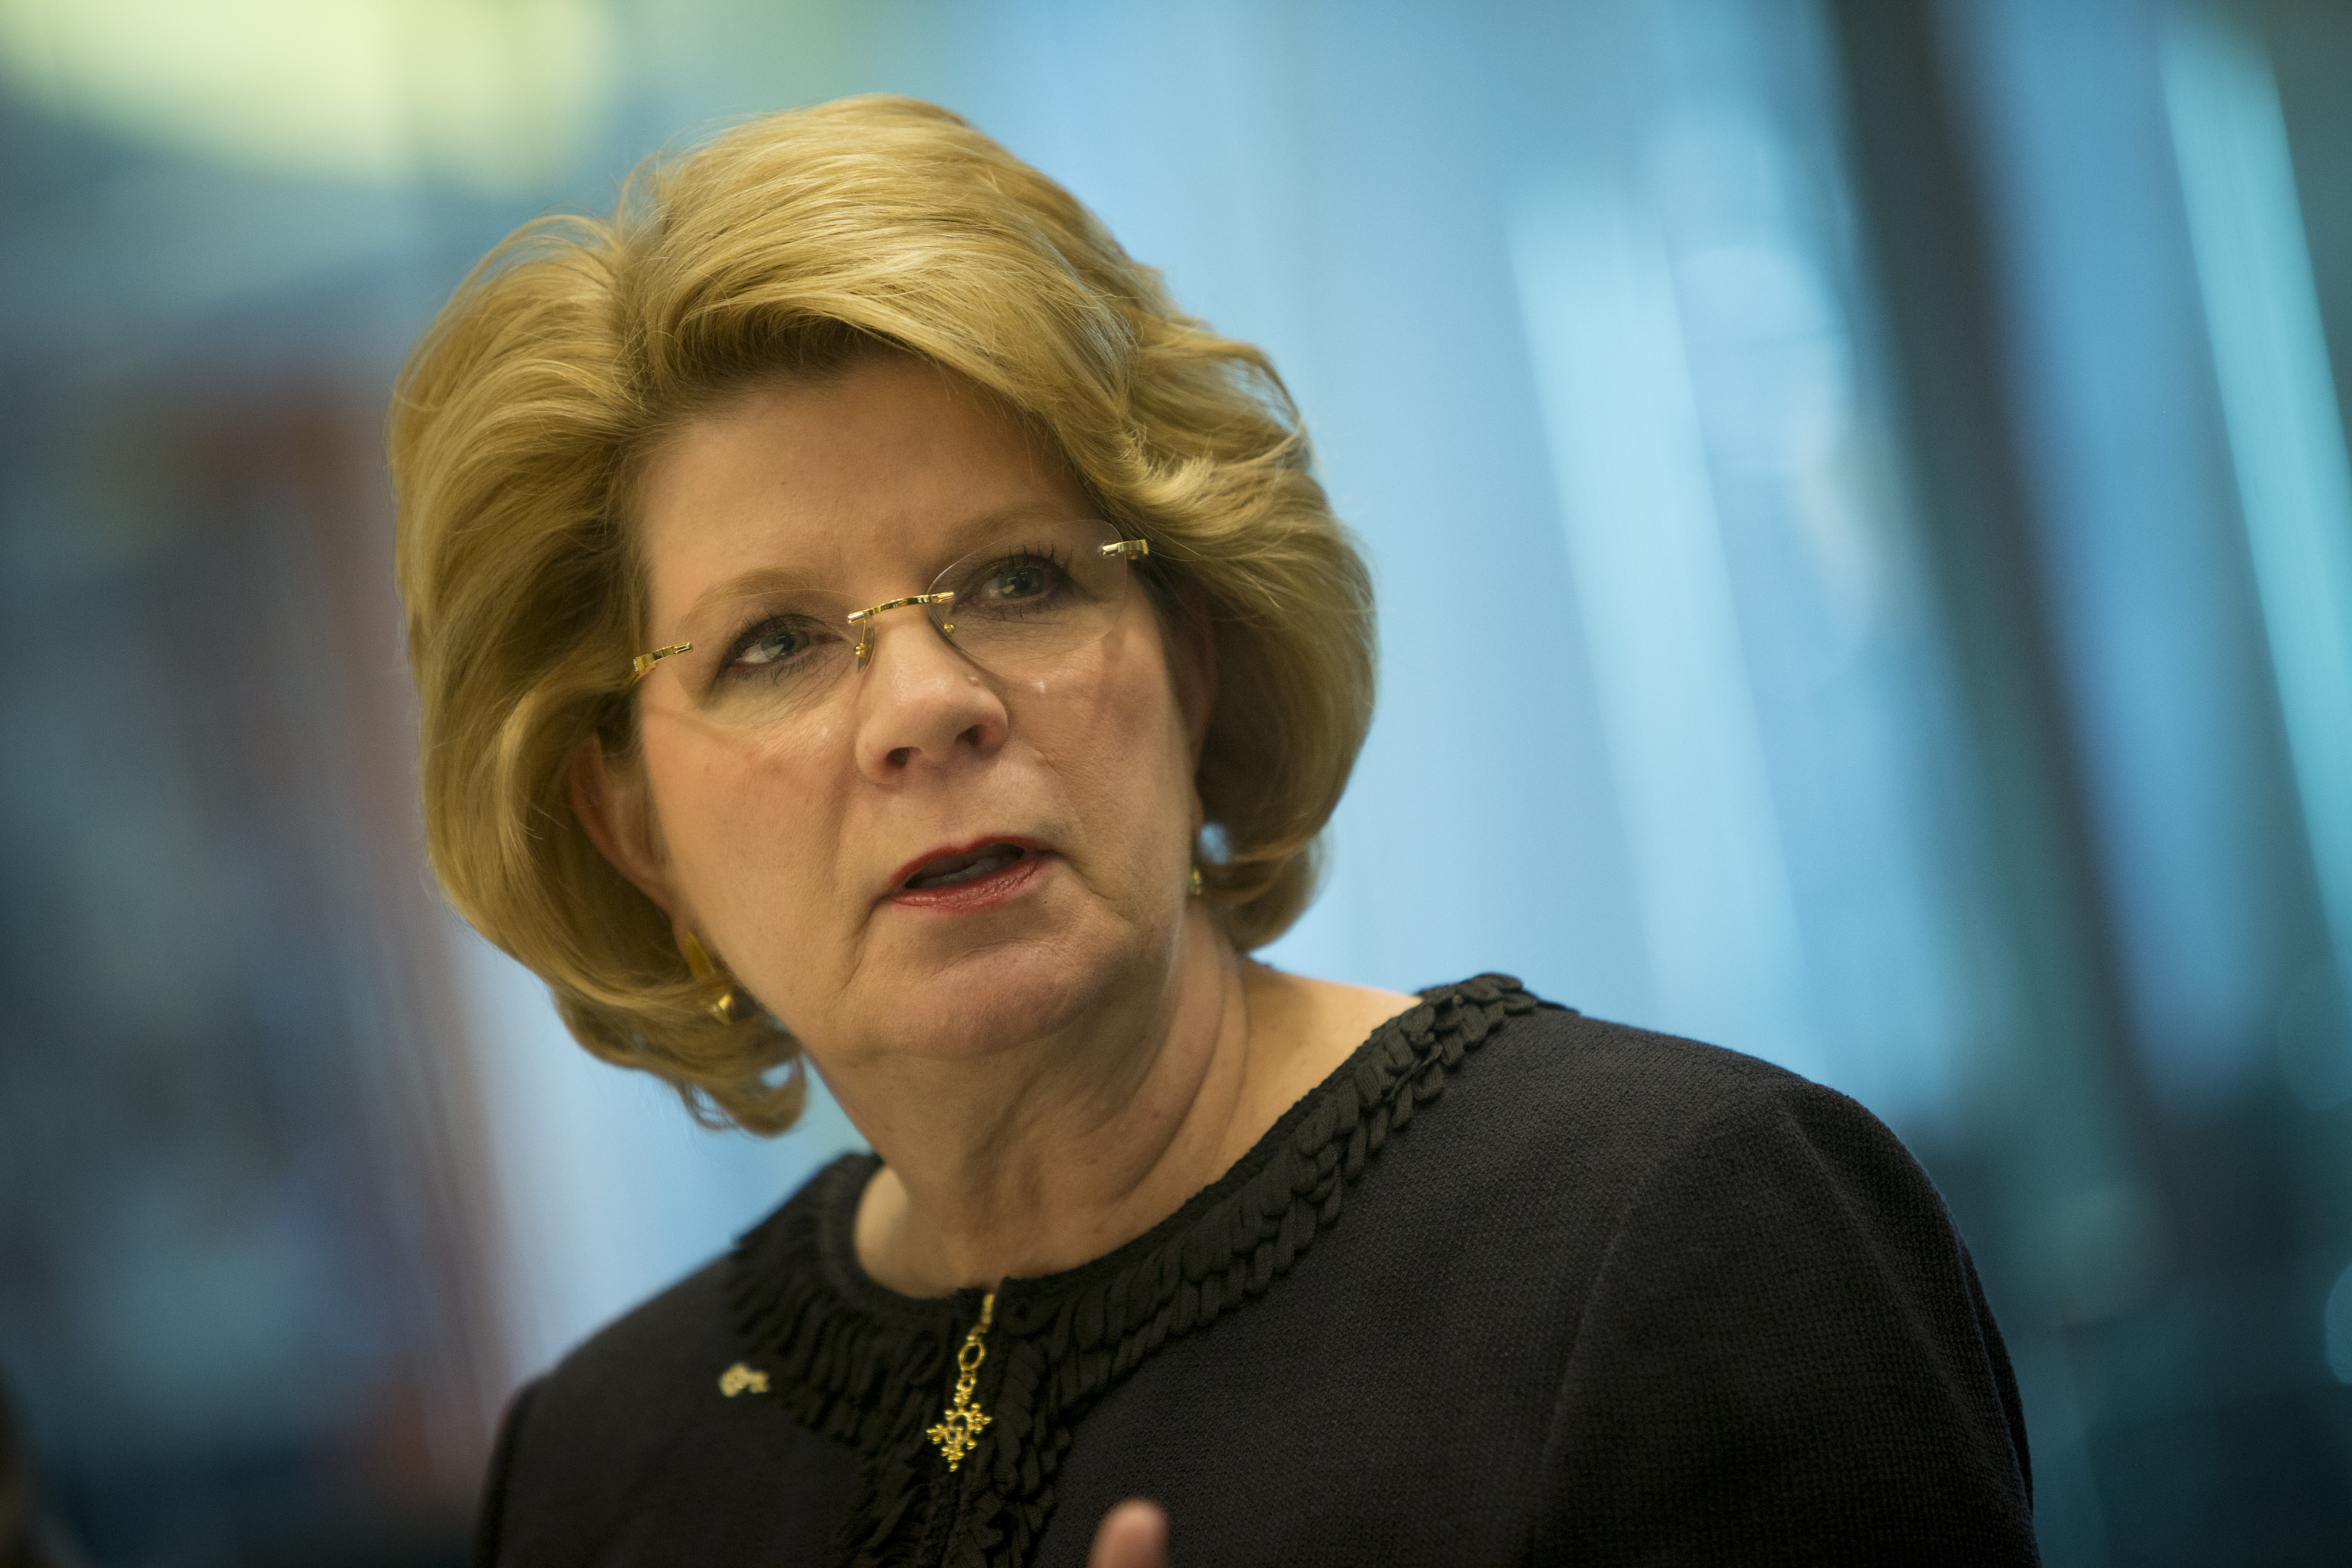 Keycorp CEO Beth Mooney Interview